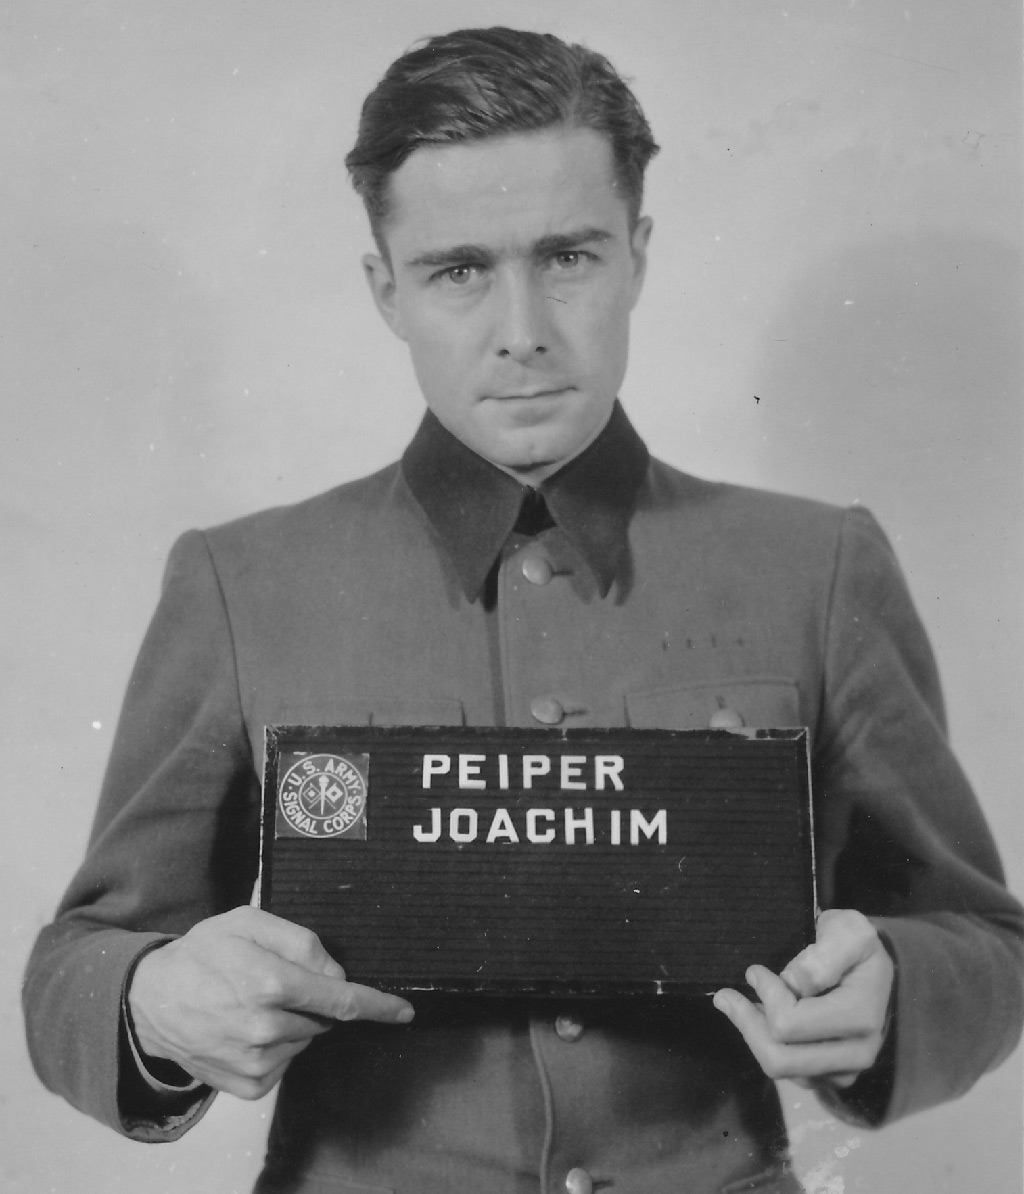 Lieutenant Colonel Joachim Peiper led a vanguard of six thousand SS troops across Belgium in a vain effort to seize crossings on the Meuse river. Convicted of mass murder, he would be condemned to death but his sentence was commuted.